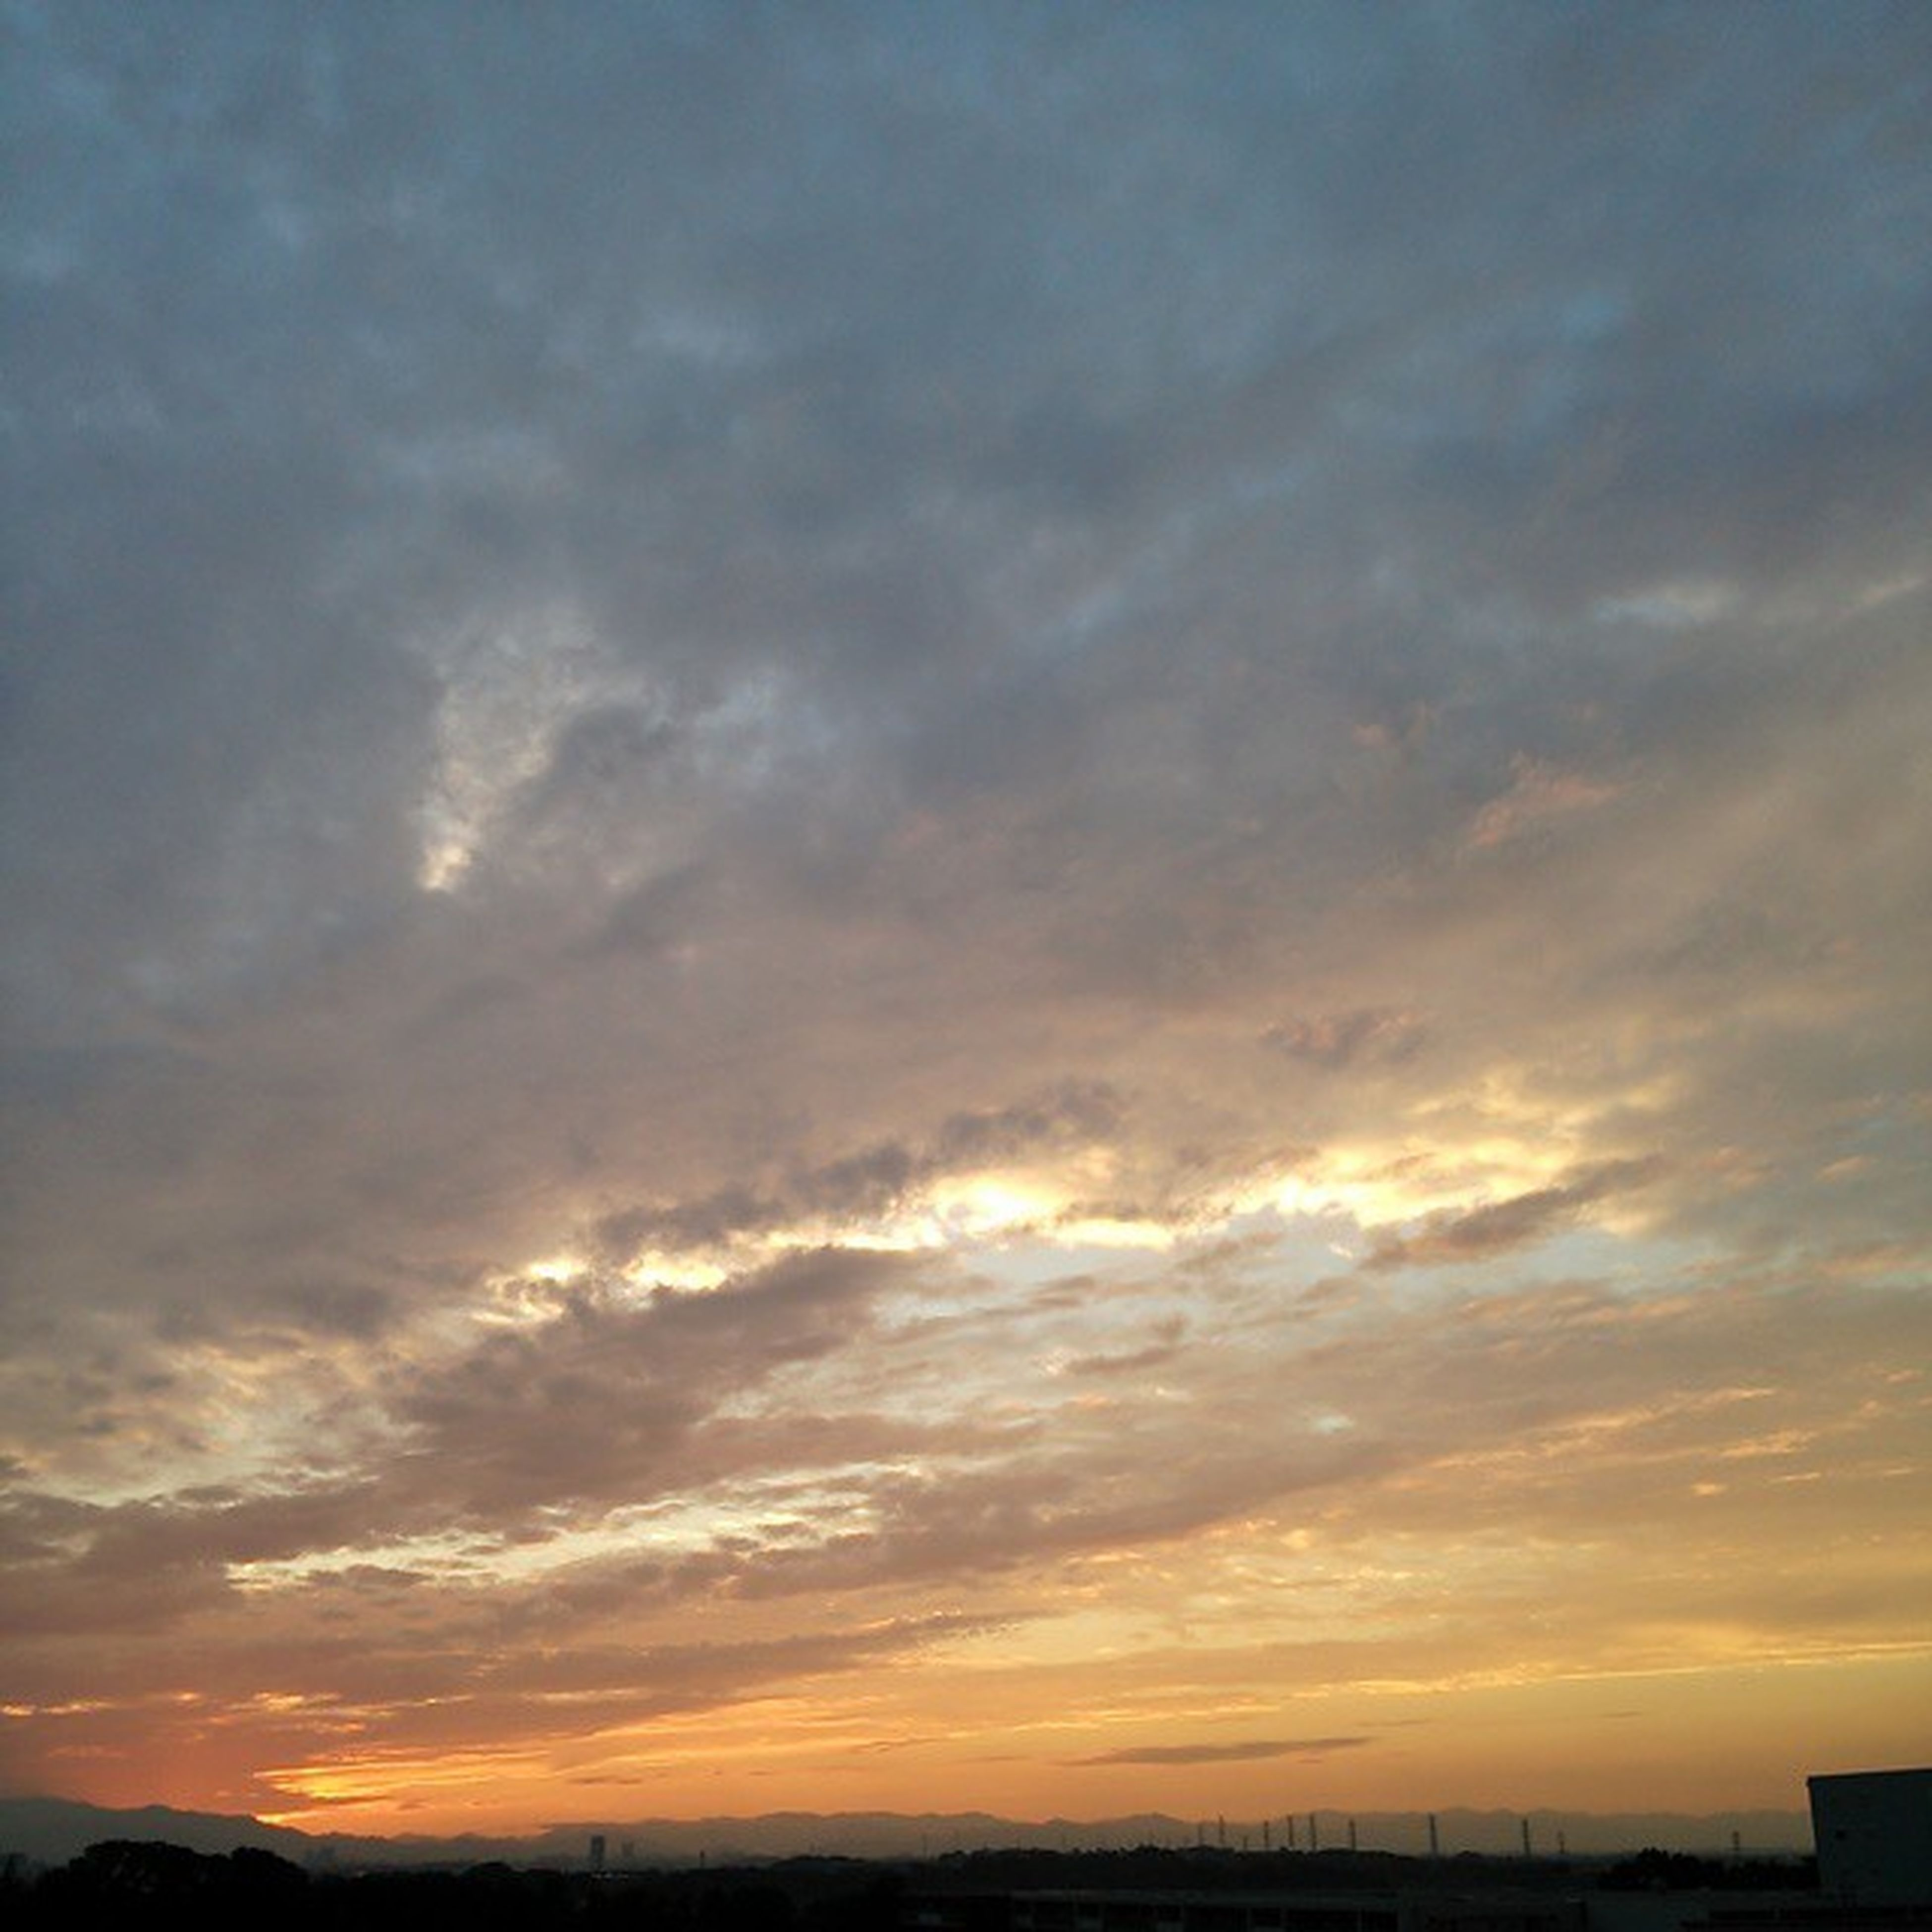 sunset, sky, scenics, tranquil scene, beauty in nature, tranquility, silhouette, cloud - sky, orange color, nature, idyllic, dramatic sky, landscape, cloud, cloudy, moody sky, outdoors, weather, no people, majestic